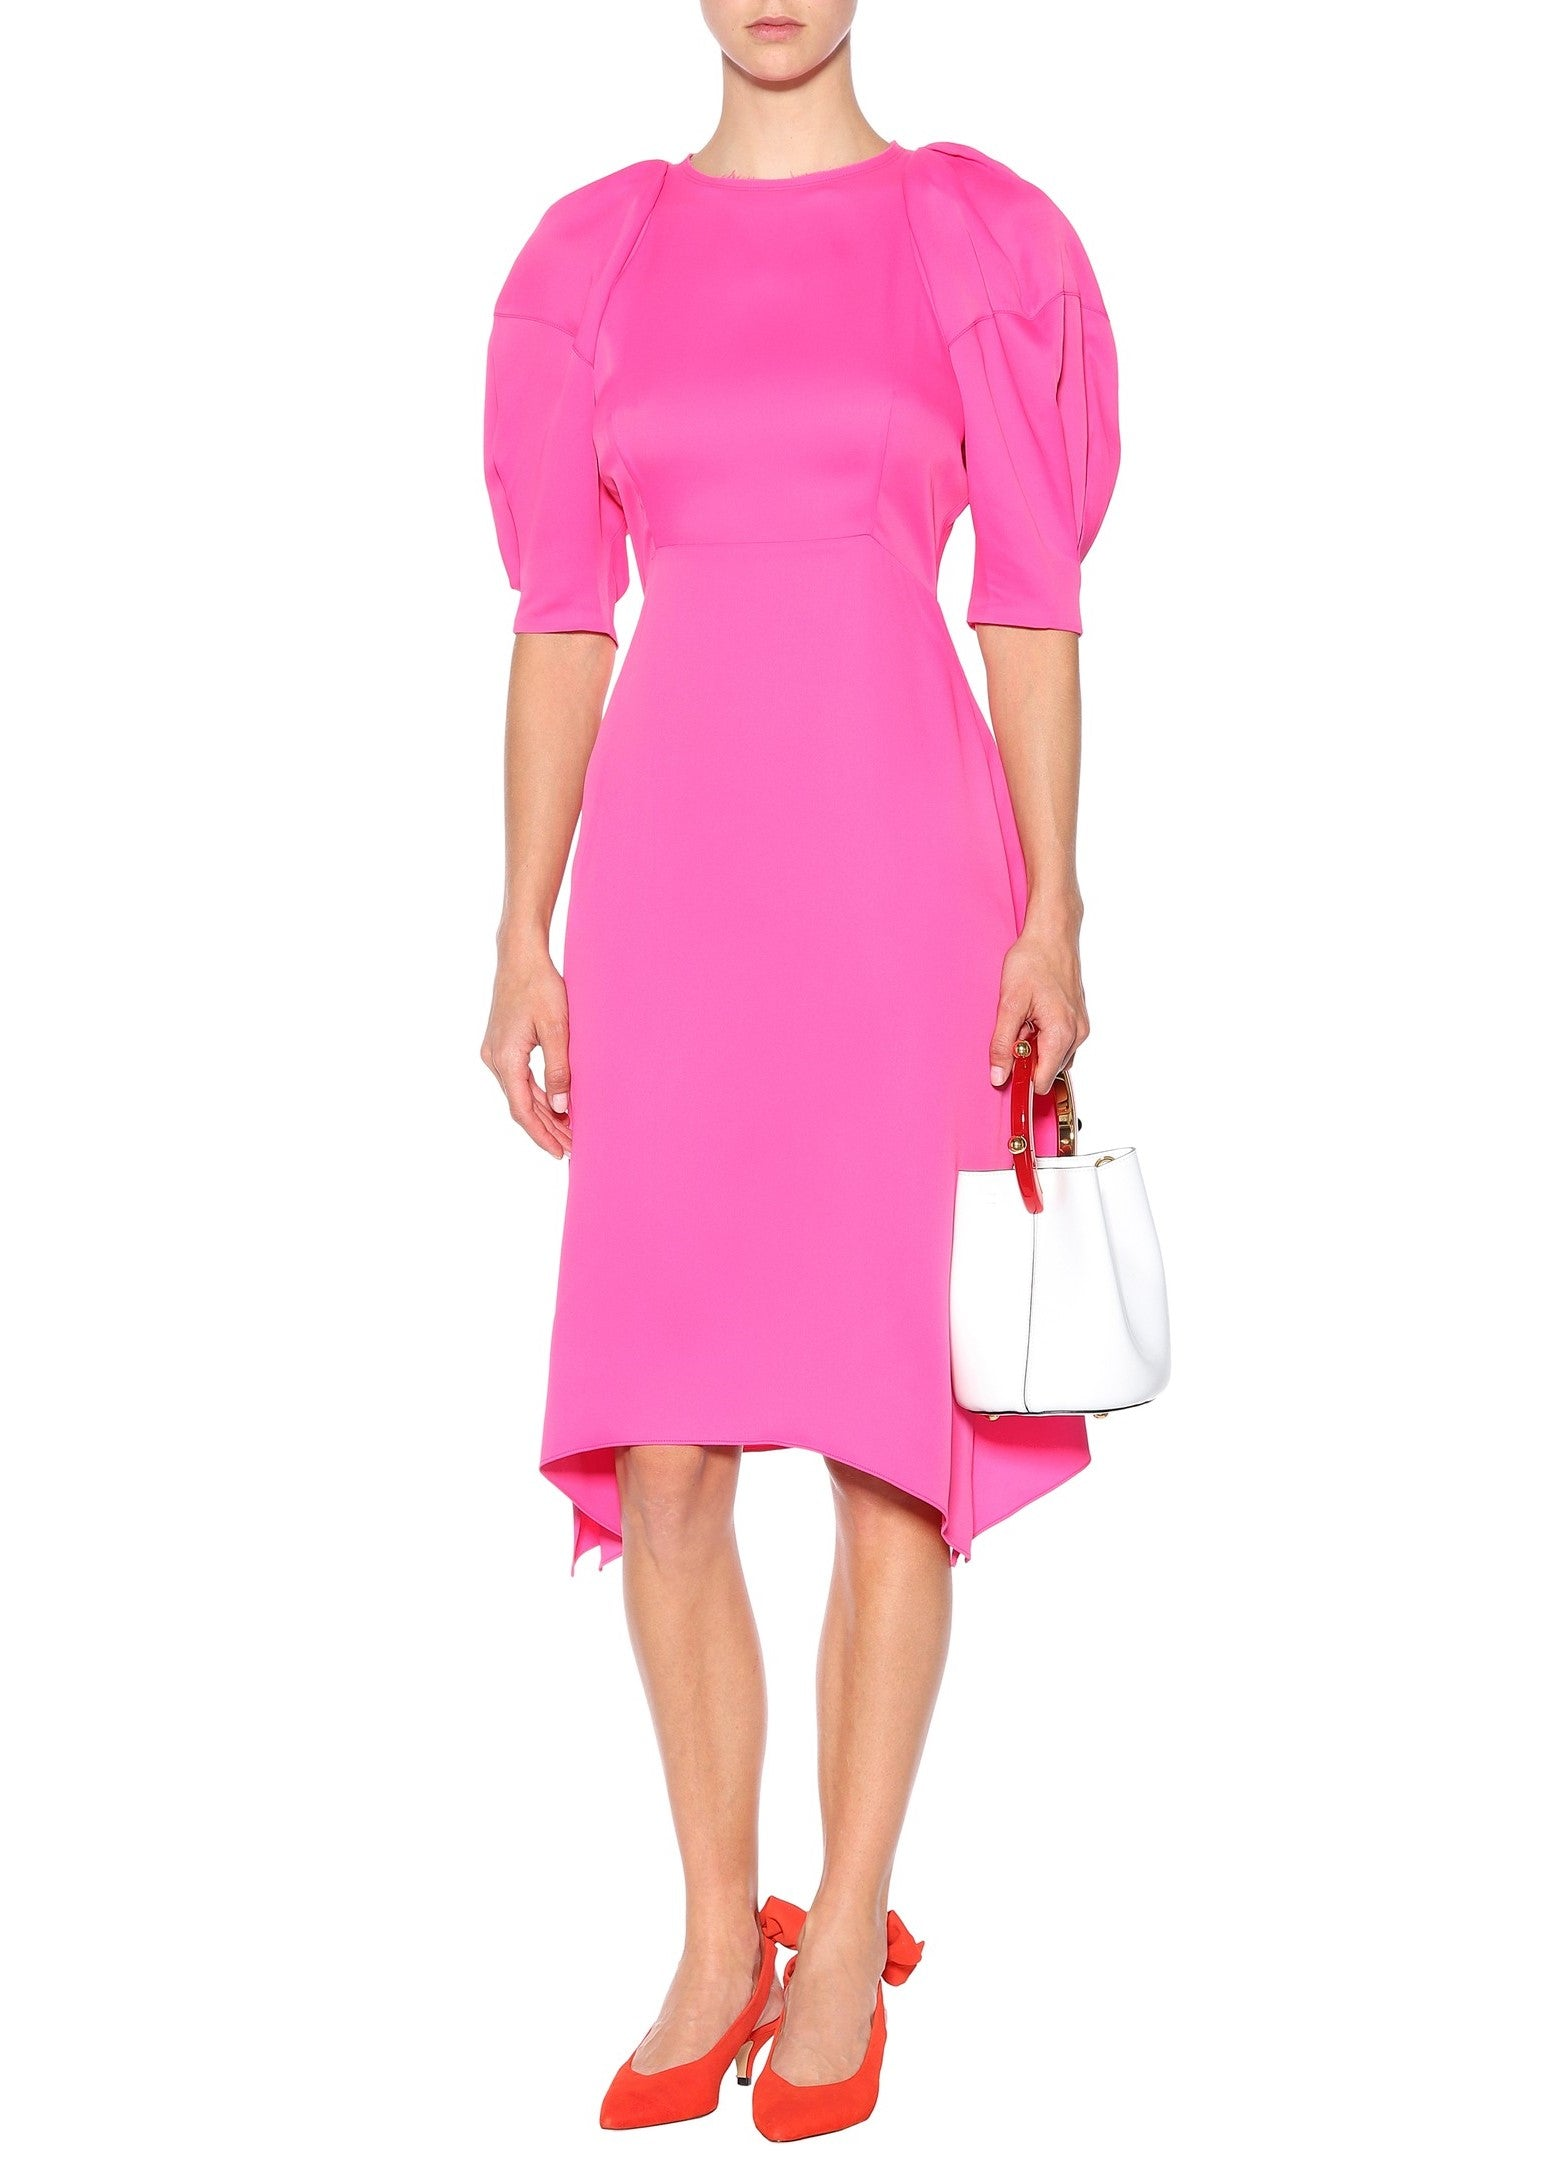 Khaite Cynthia dress in bright pink